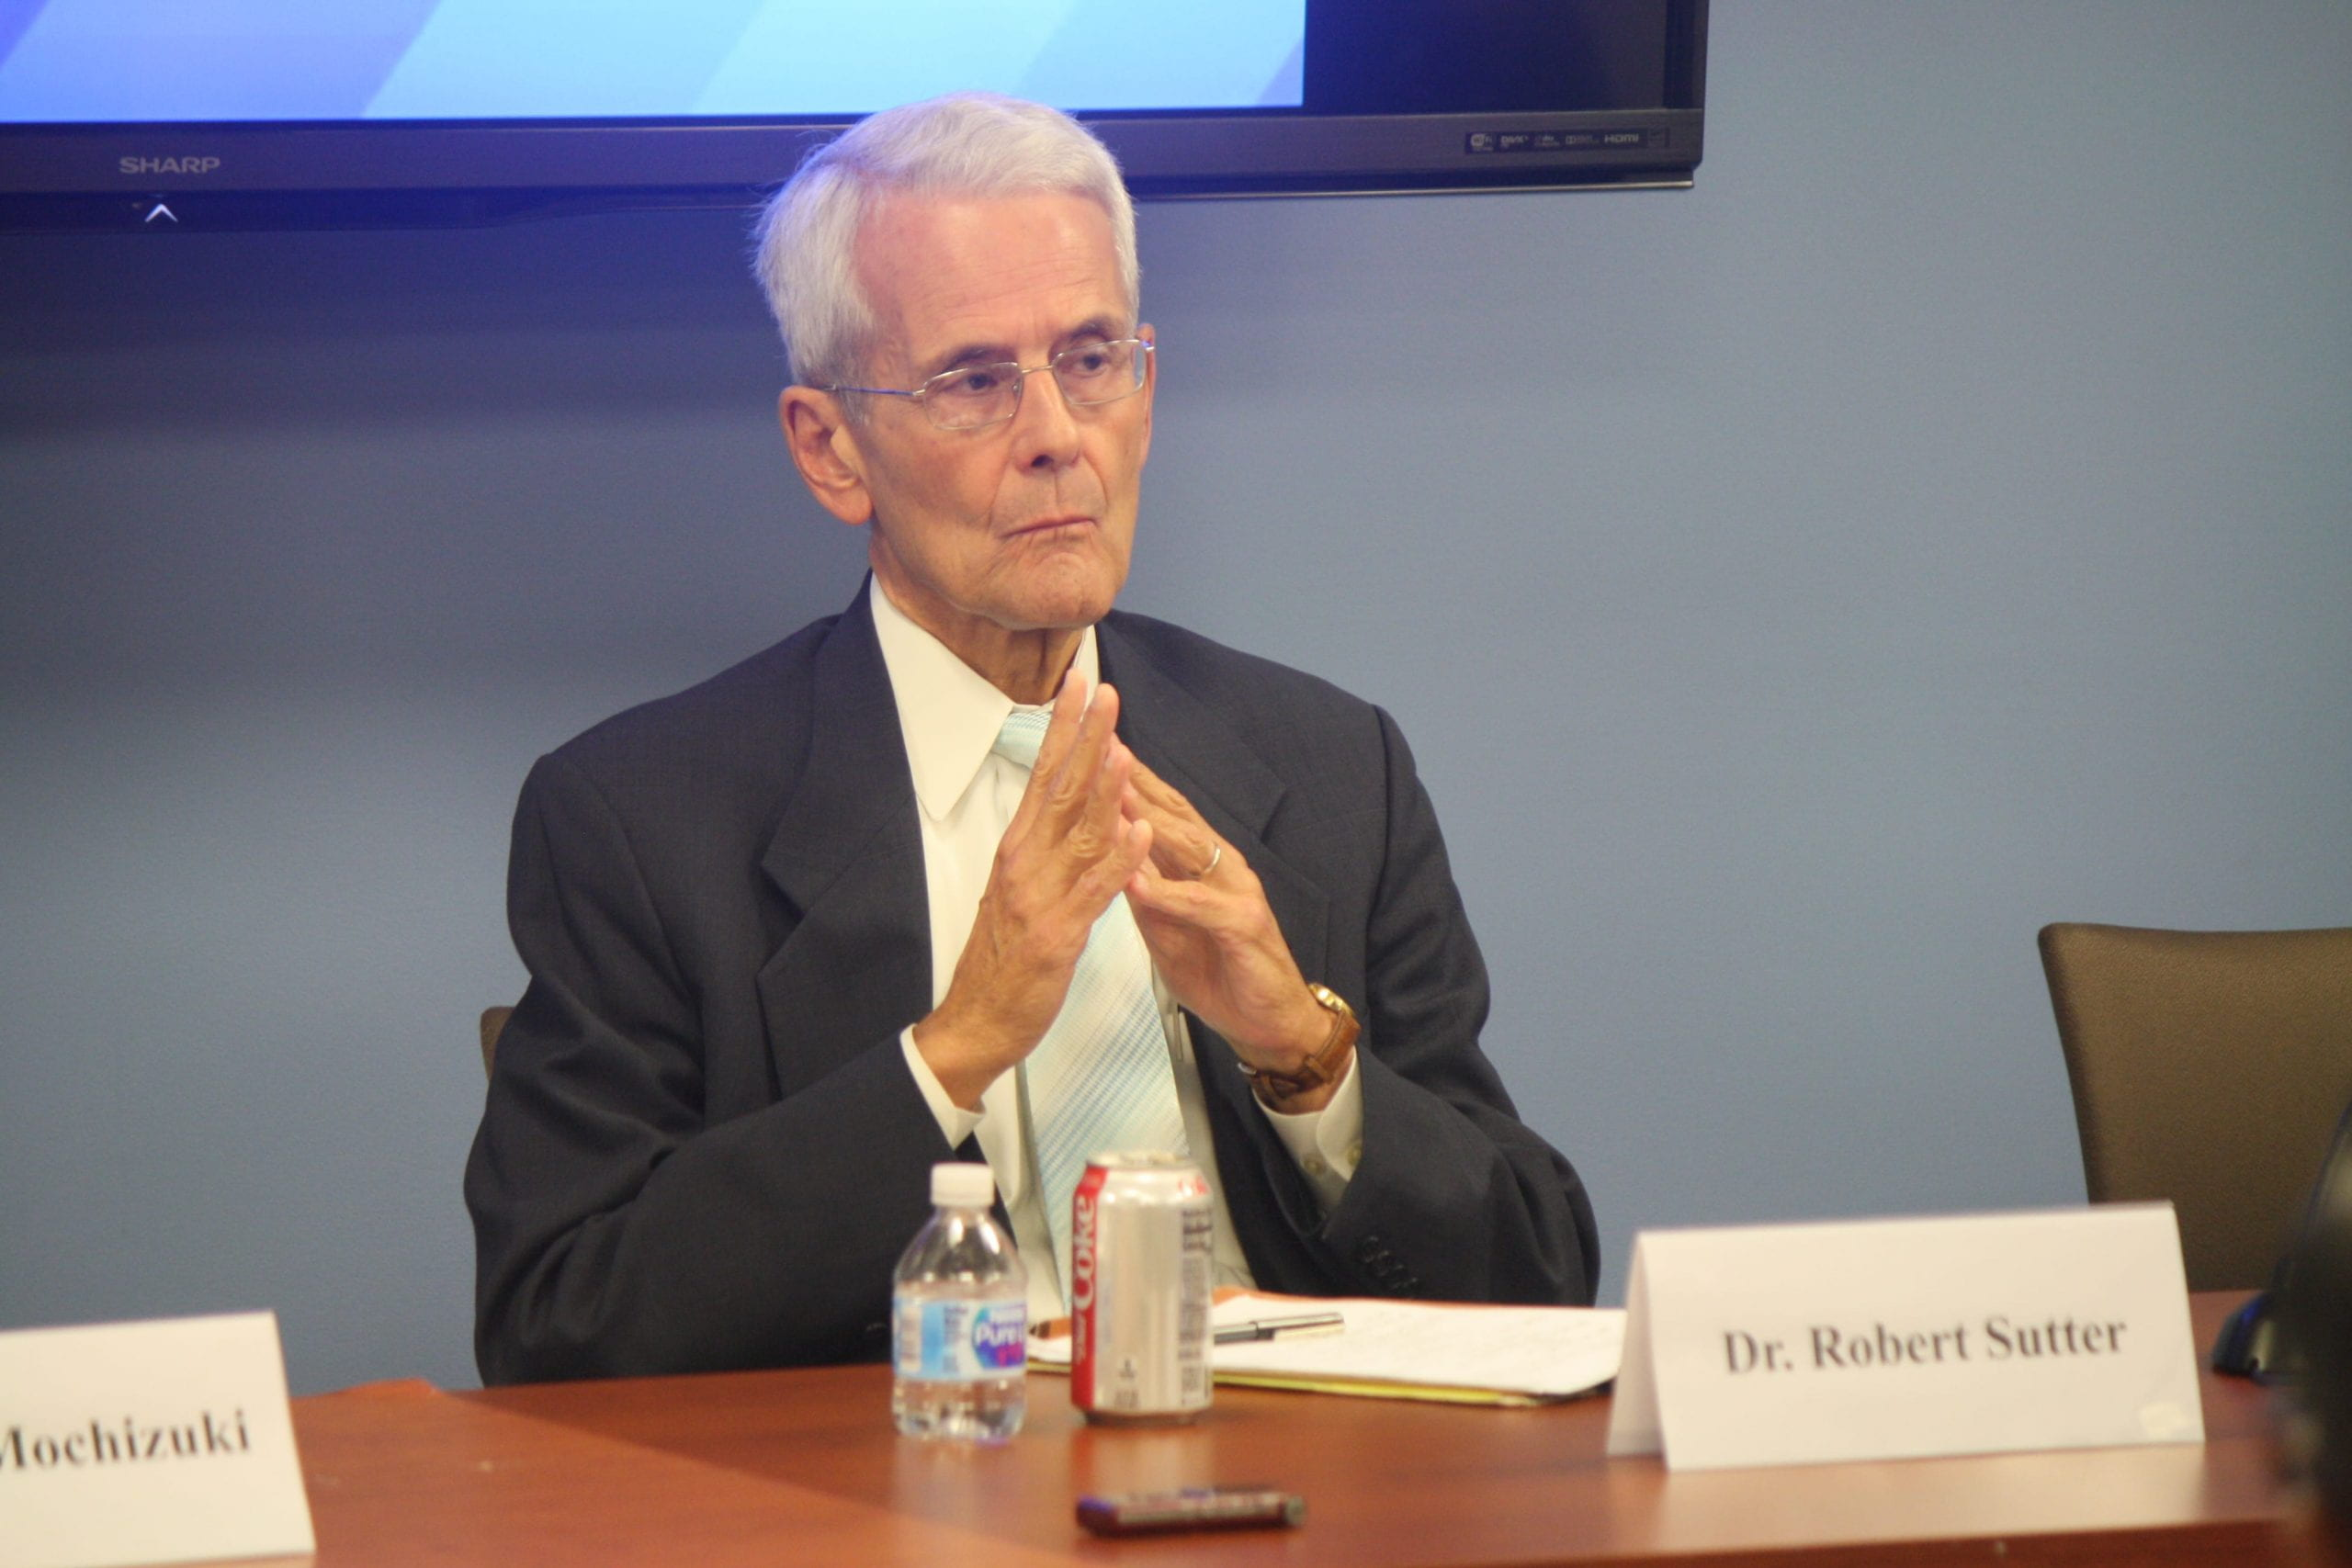 """Professor Robert Sutter taking questions at """"The Indo-Pacific and Regional Trends: Towards Connectivity or Conflict?"""" public seminar on September 24, 2018."""